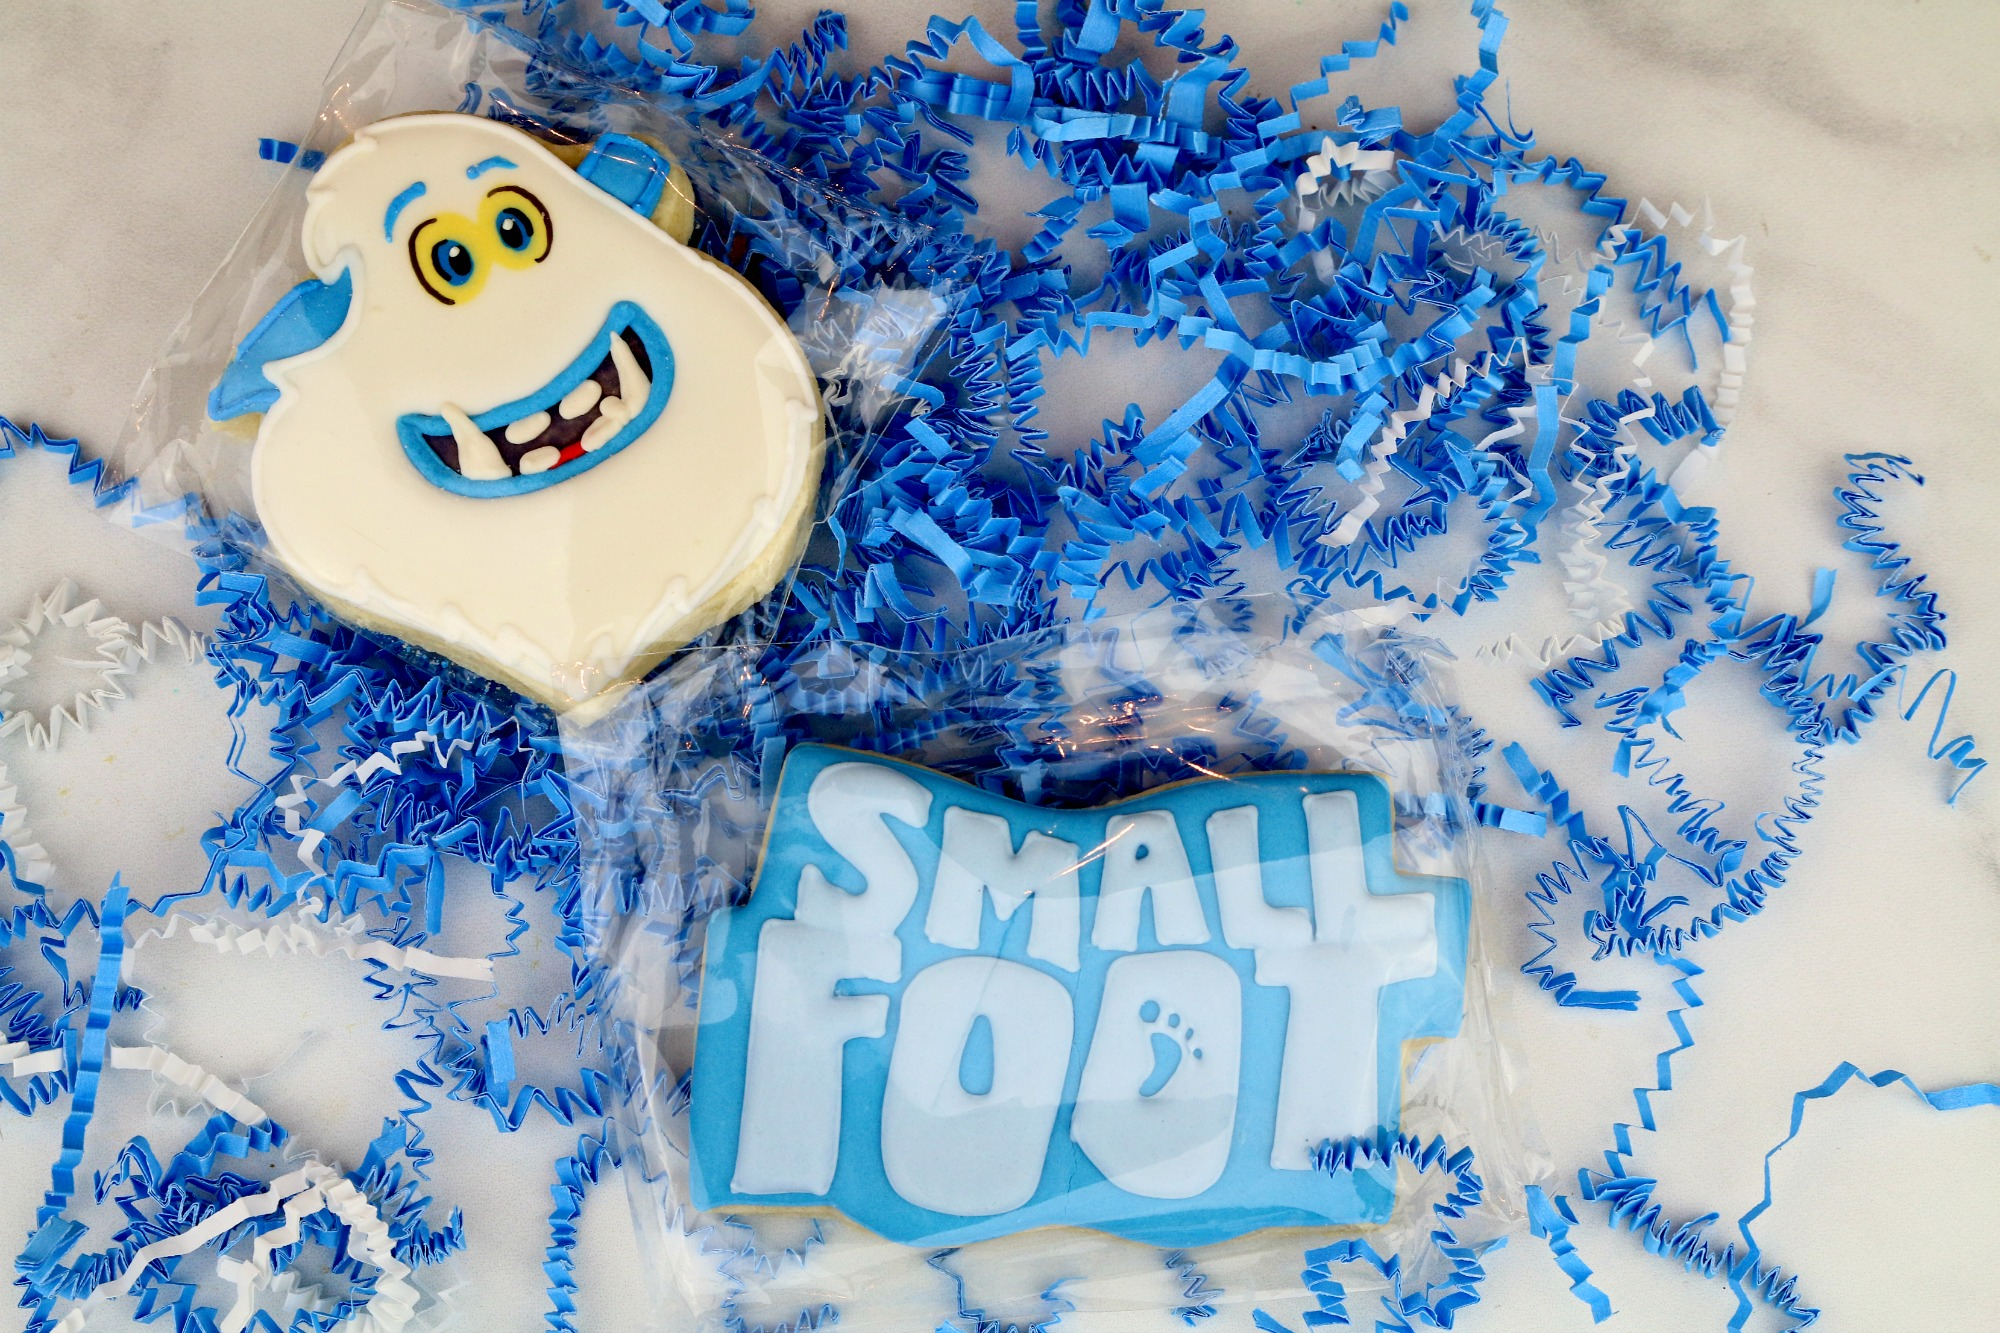 Small Foot Movie Cookies